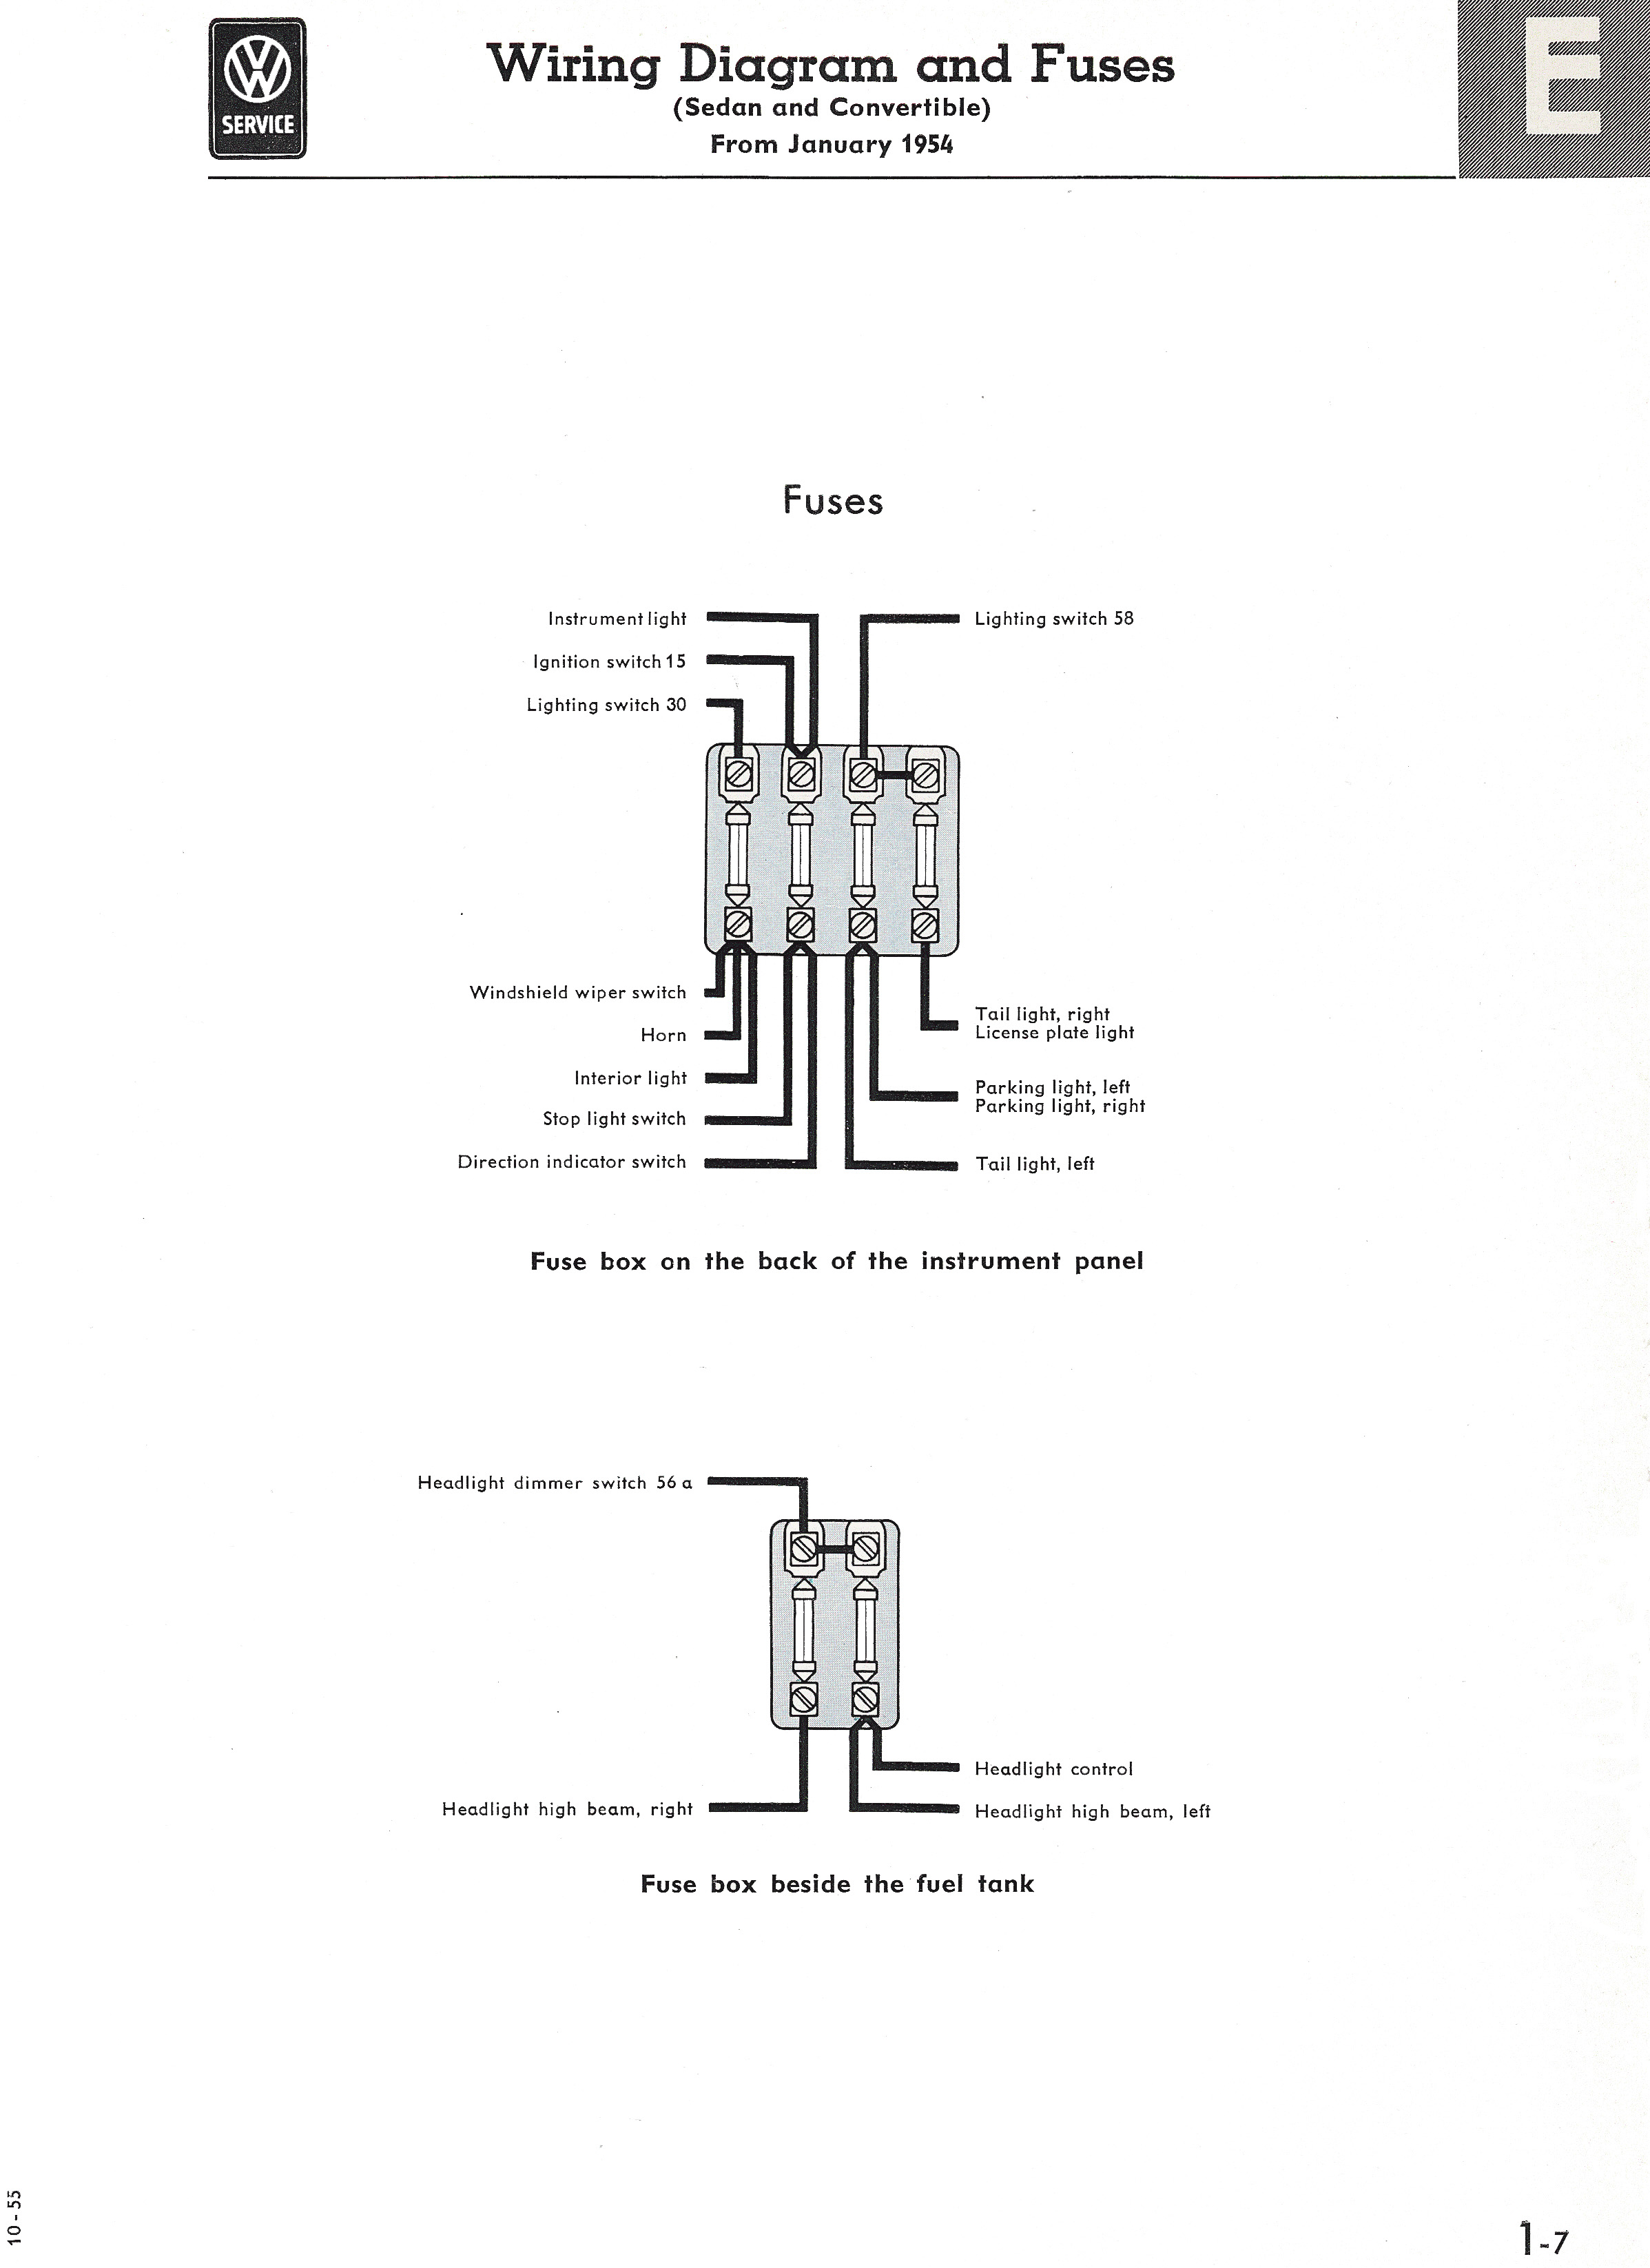 Type 1 Wiring Diagrams 1974 Isuzu For Free